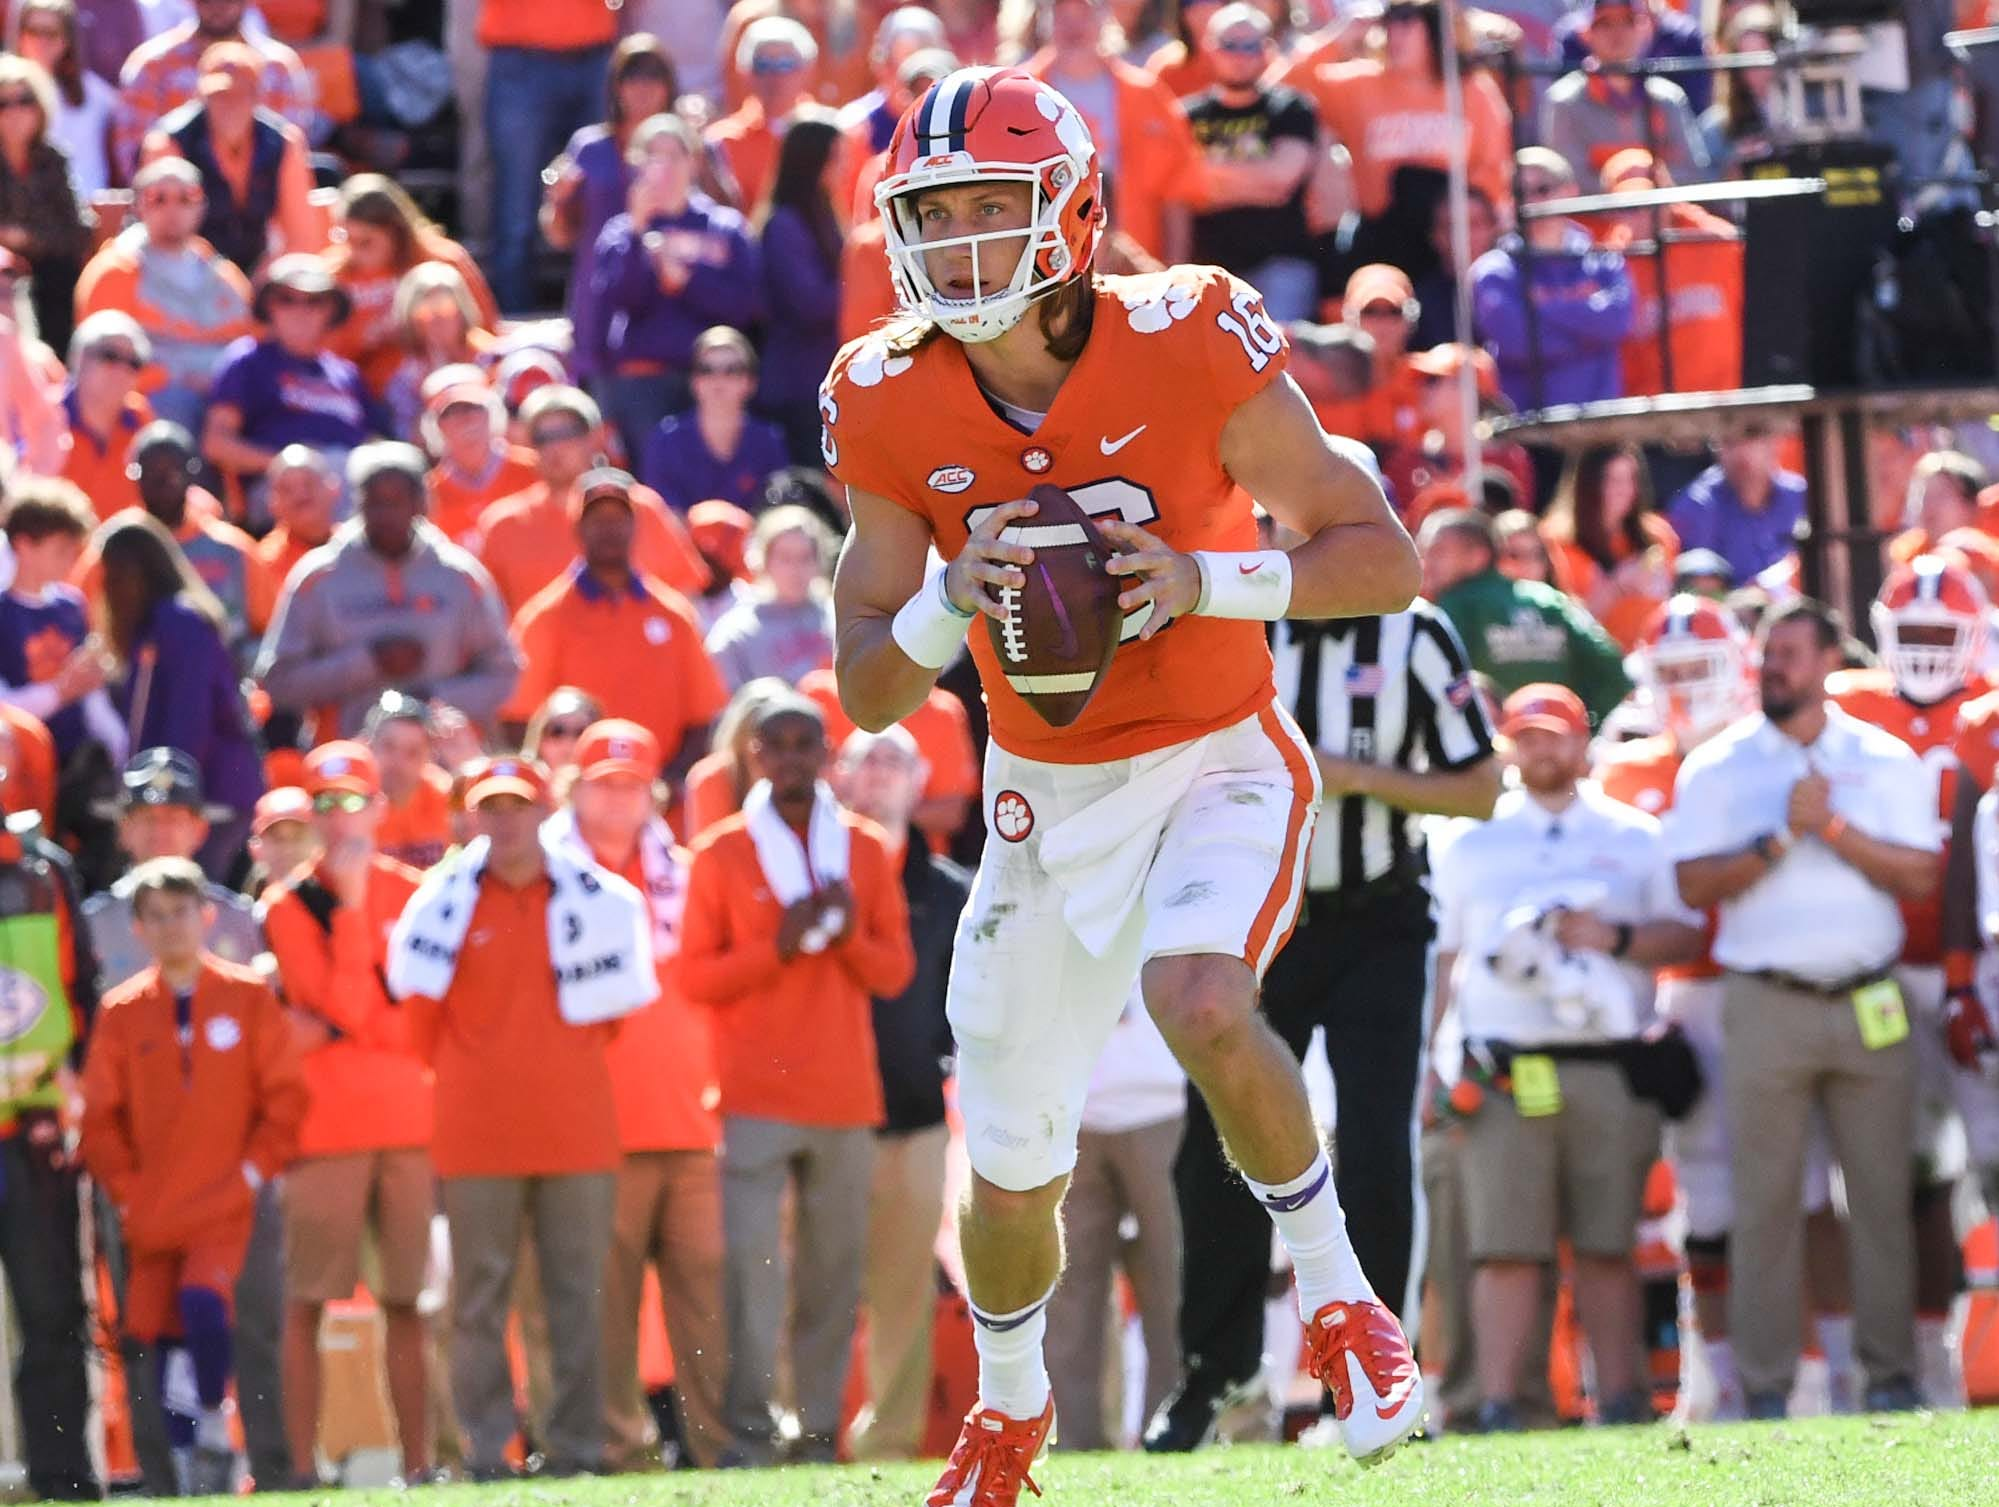 Clemson quarterback Trevor Lawrence (16) rolls out to throw to wide receiver Amari Rodgers (3) for a touchdown during the second quarter in Memorial Stadium on Saturday, November 3, 2018.